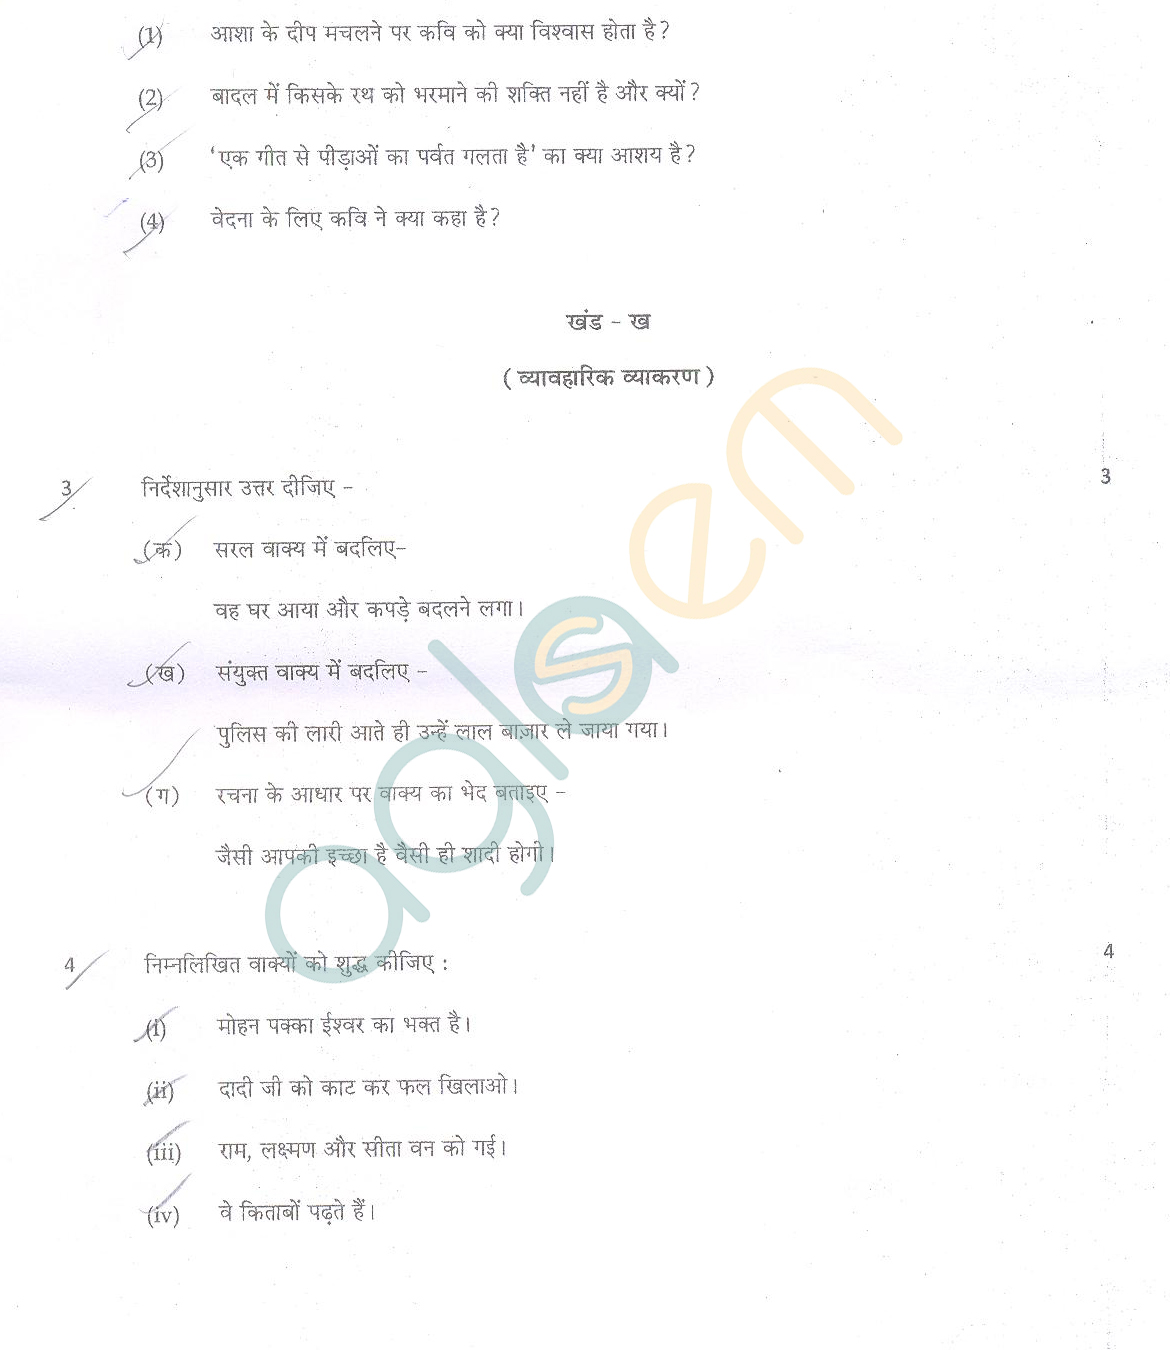 Sample Question Paper For Class 10 Cbse 2014 Sa2 Hindi